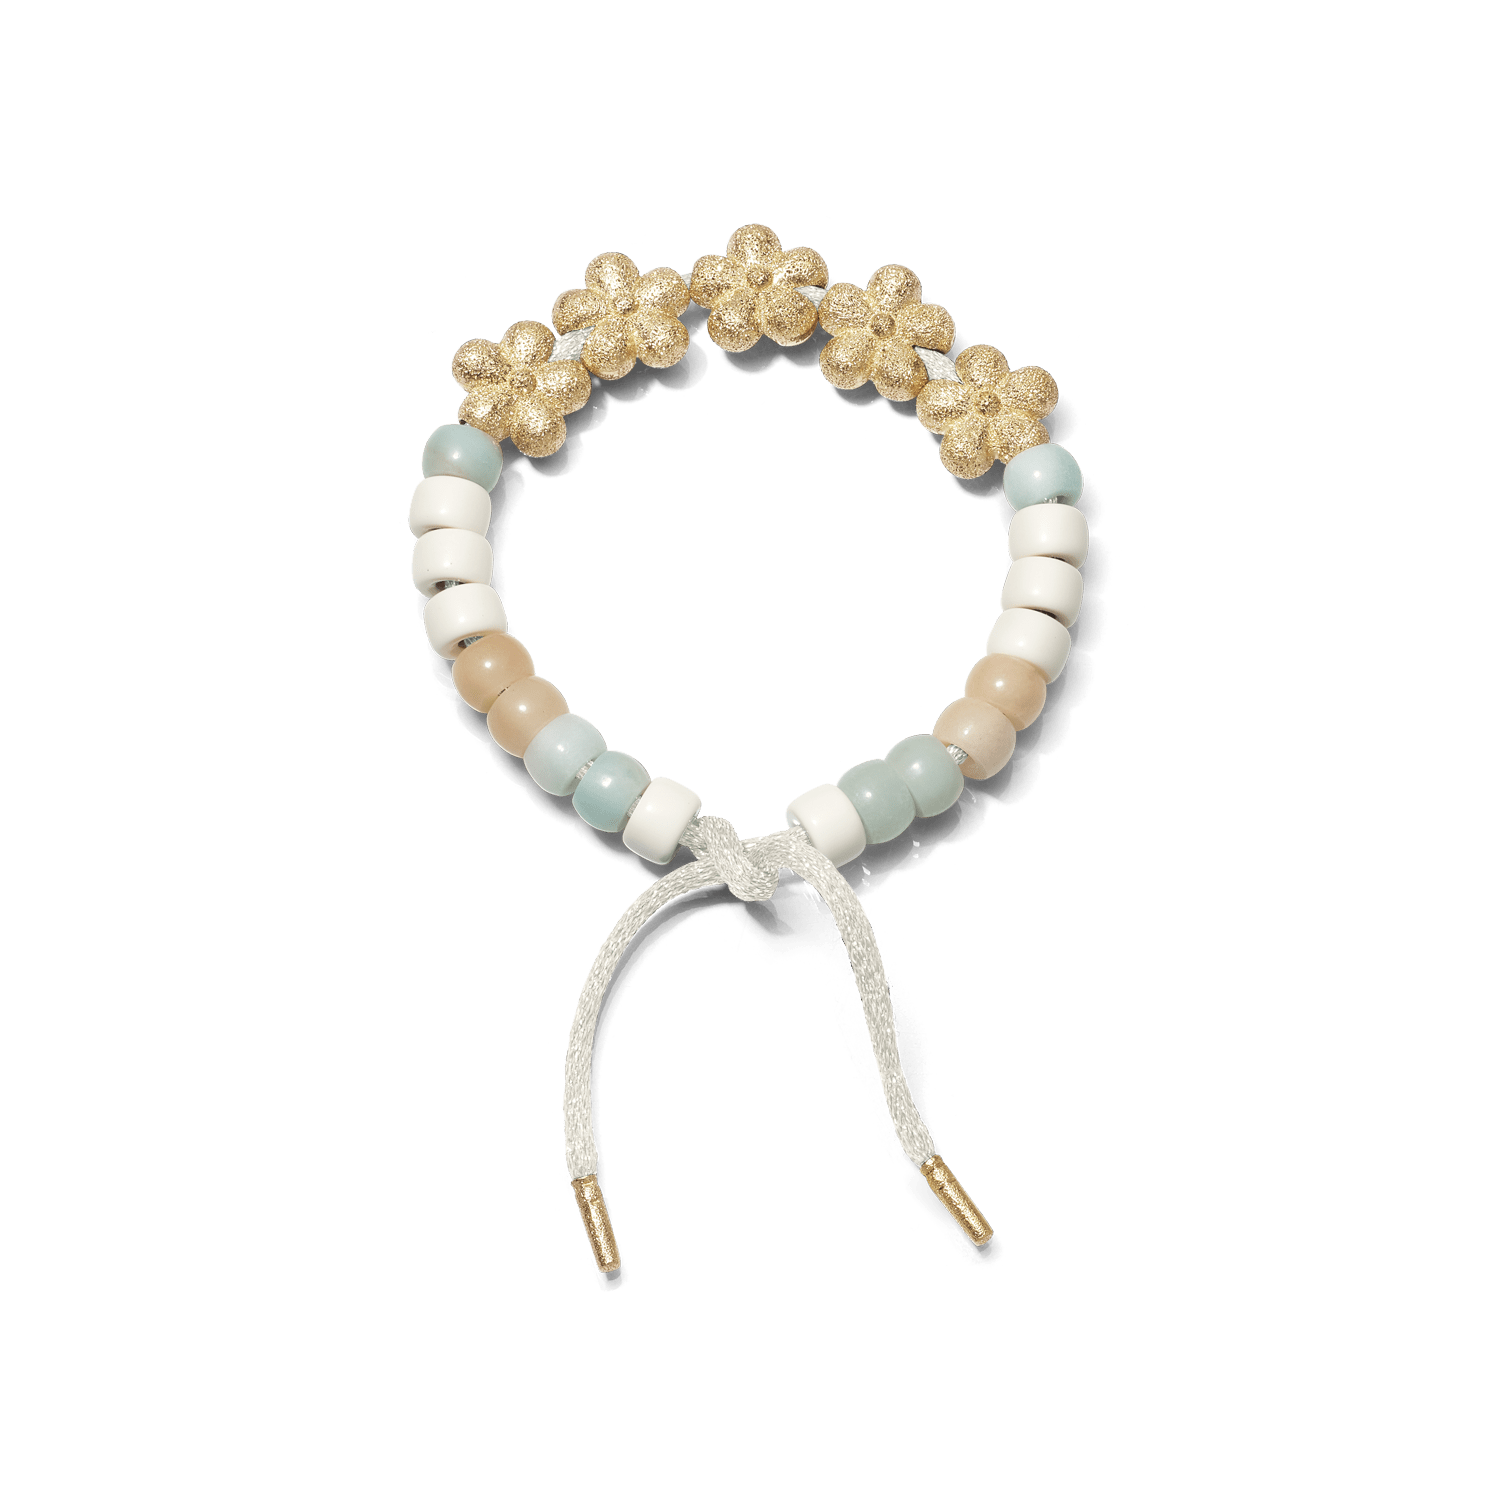 Carolina Bucci Forte Beads Bracelet with Flower Beads